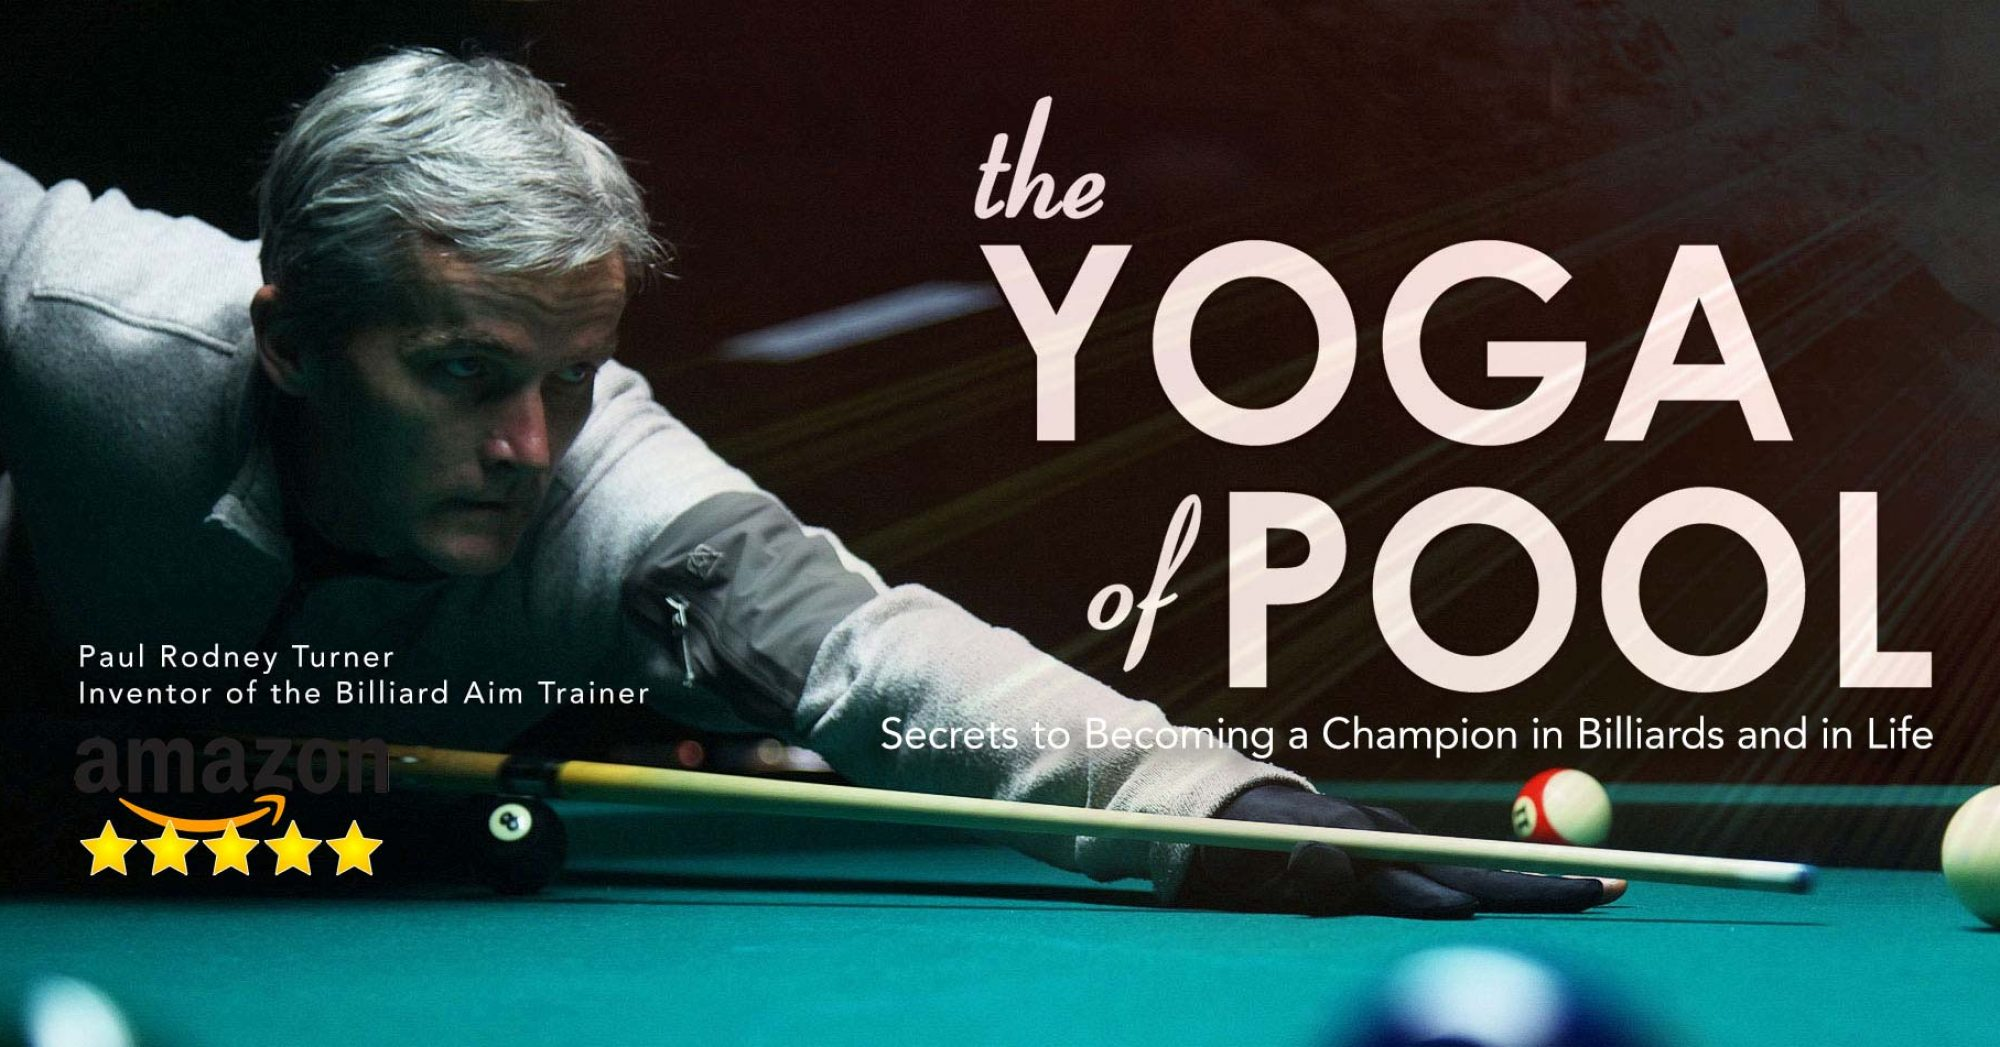 The Yoga of Pool